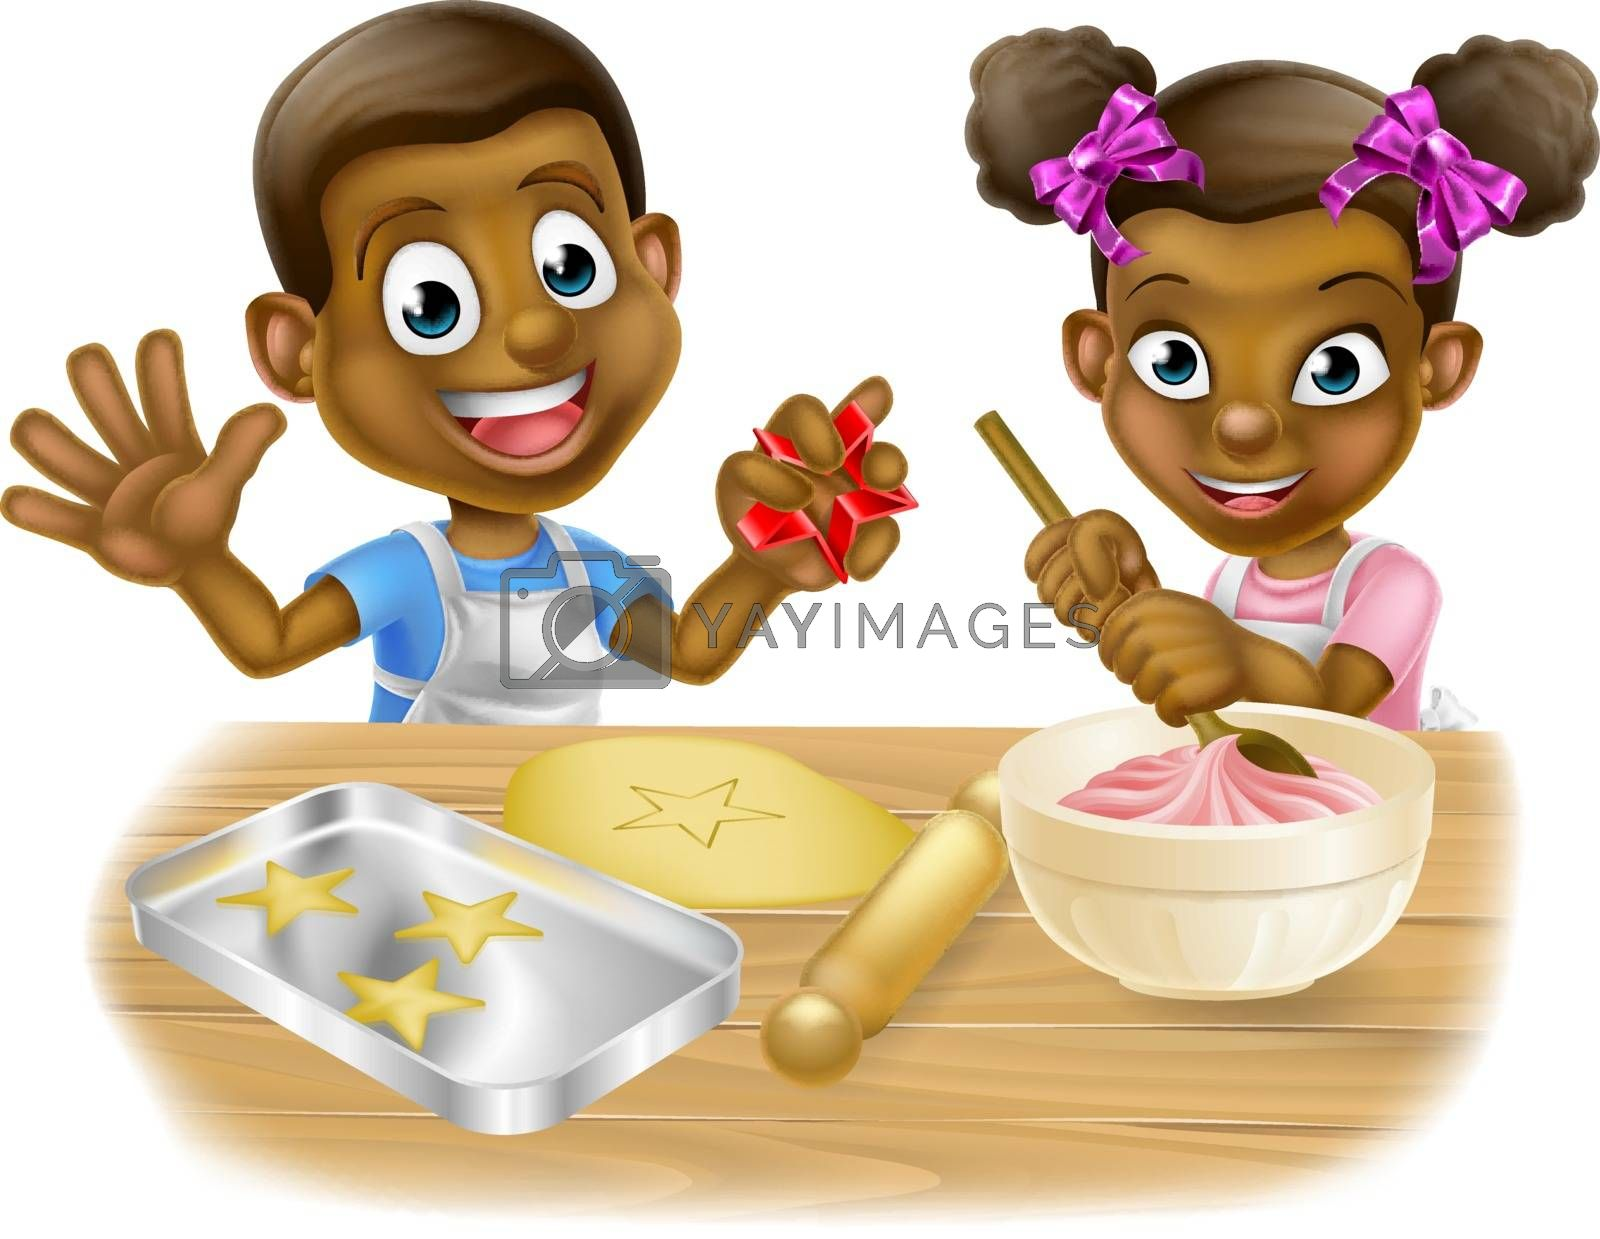 A cartoon black boy and girl children dressed as bakers baking cakes and cookies